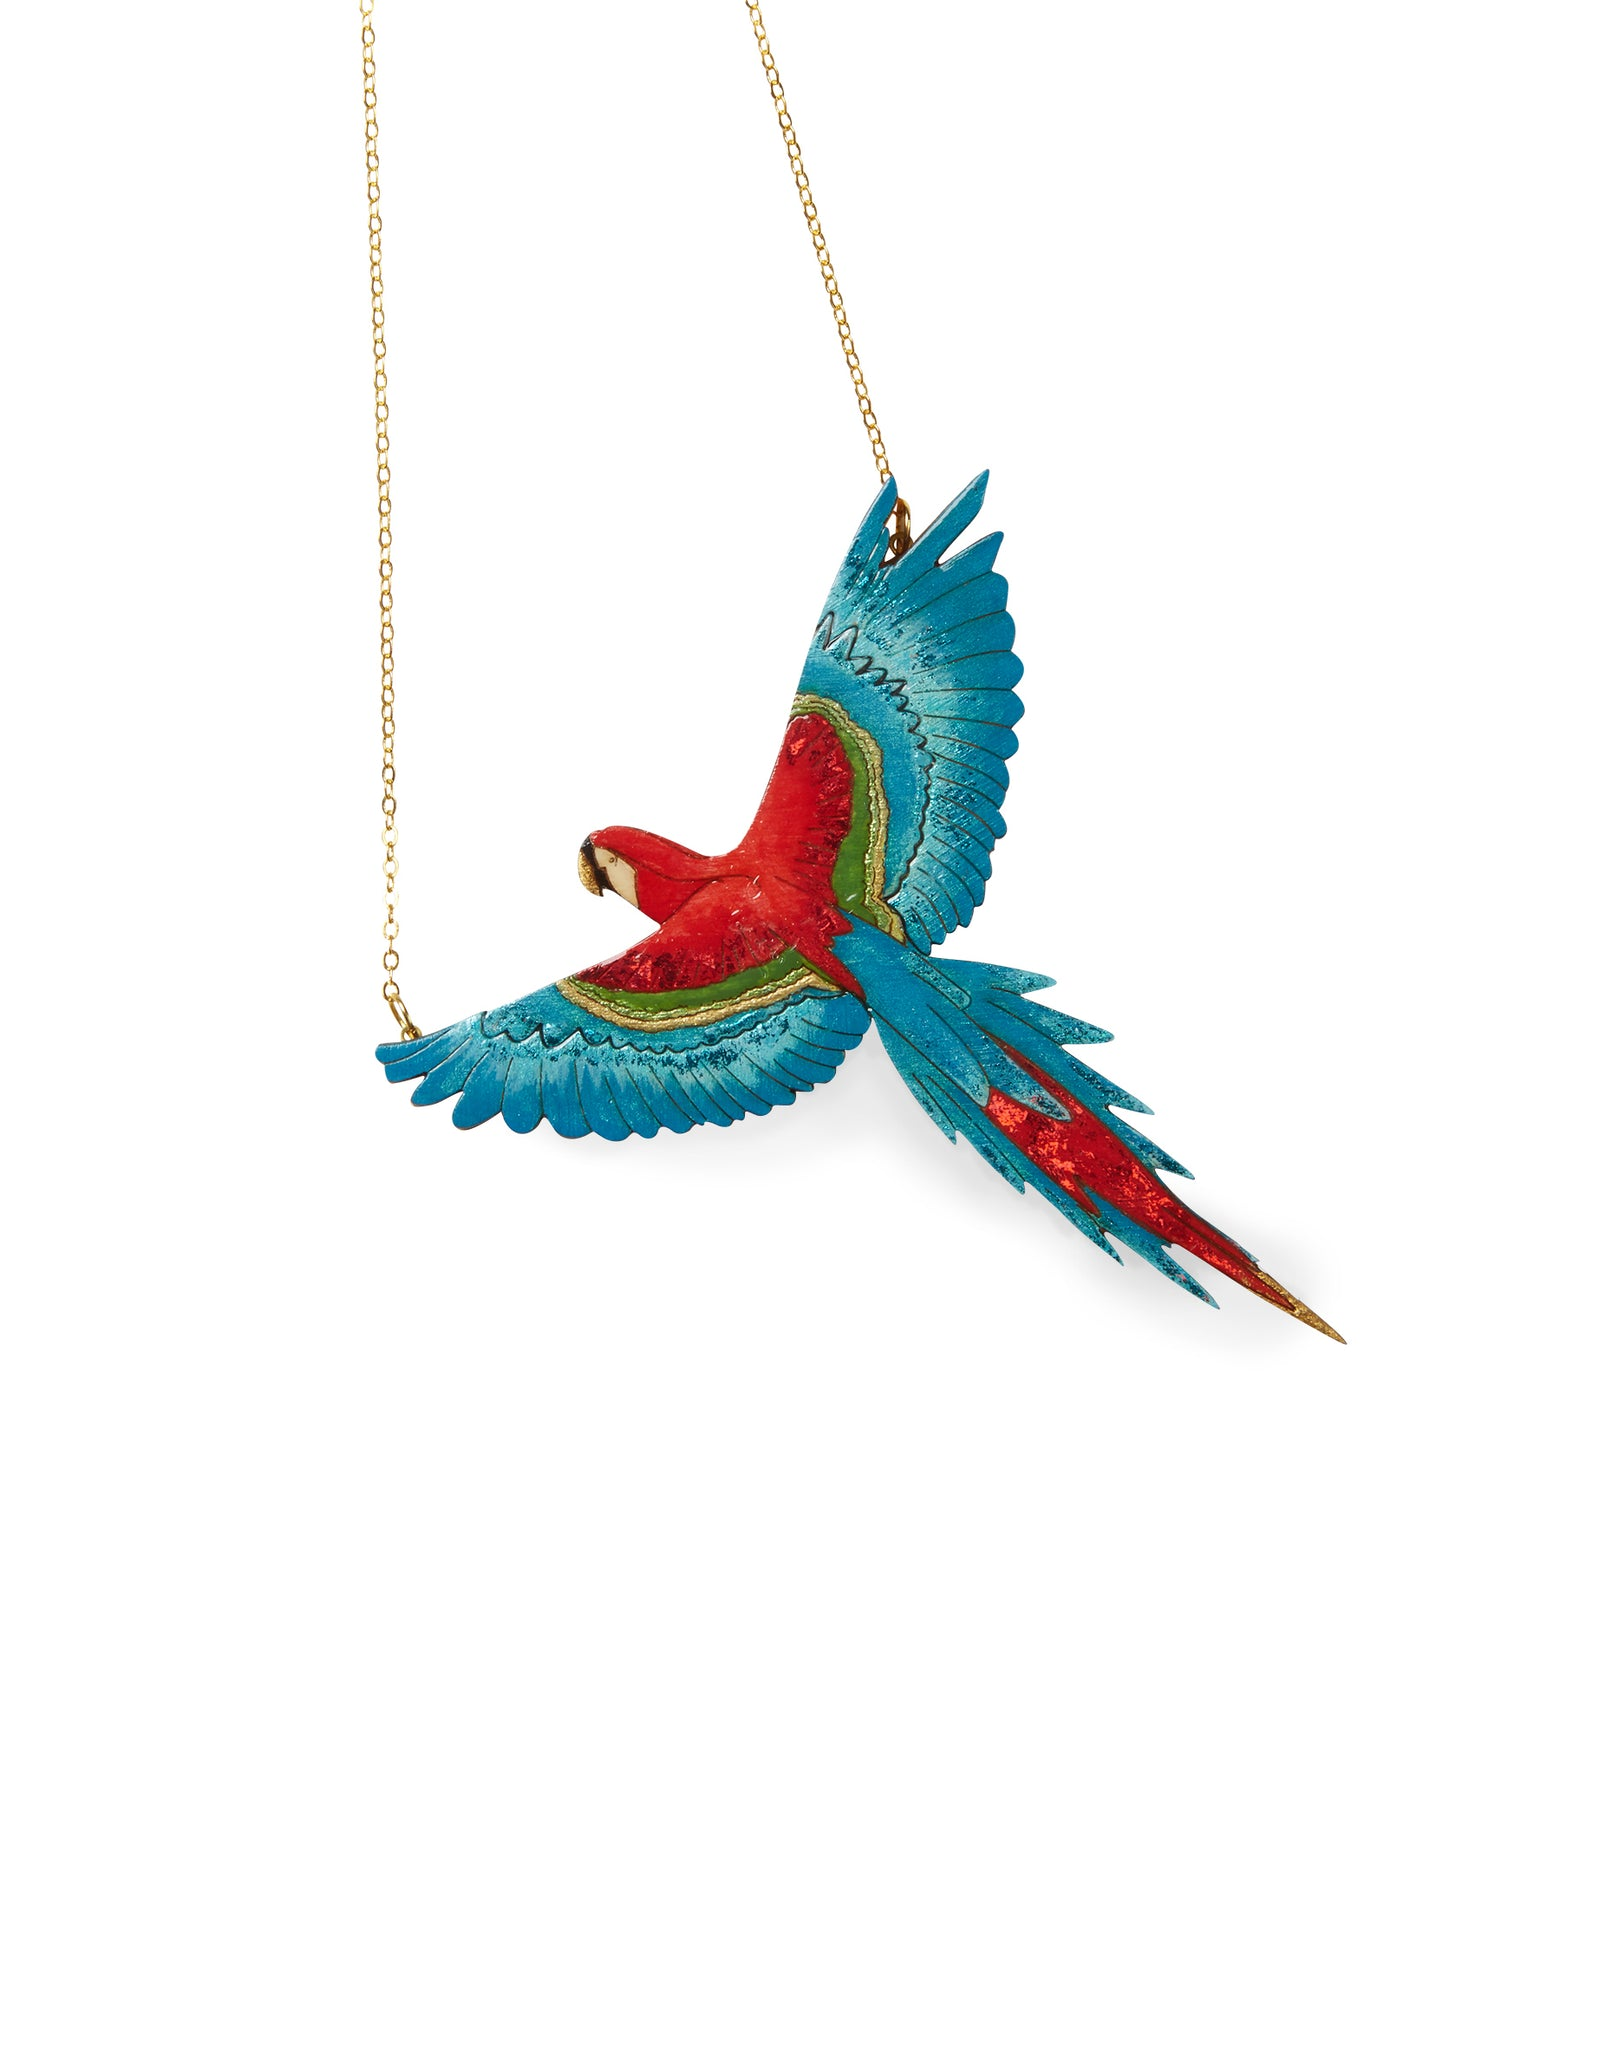 Parrot Laser-cut Acrylic Hand-painted British-made Retro Necklace